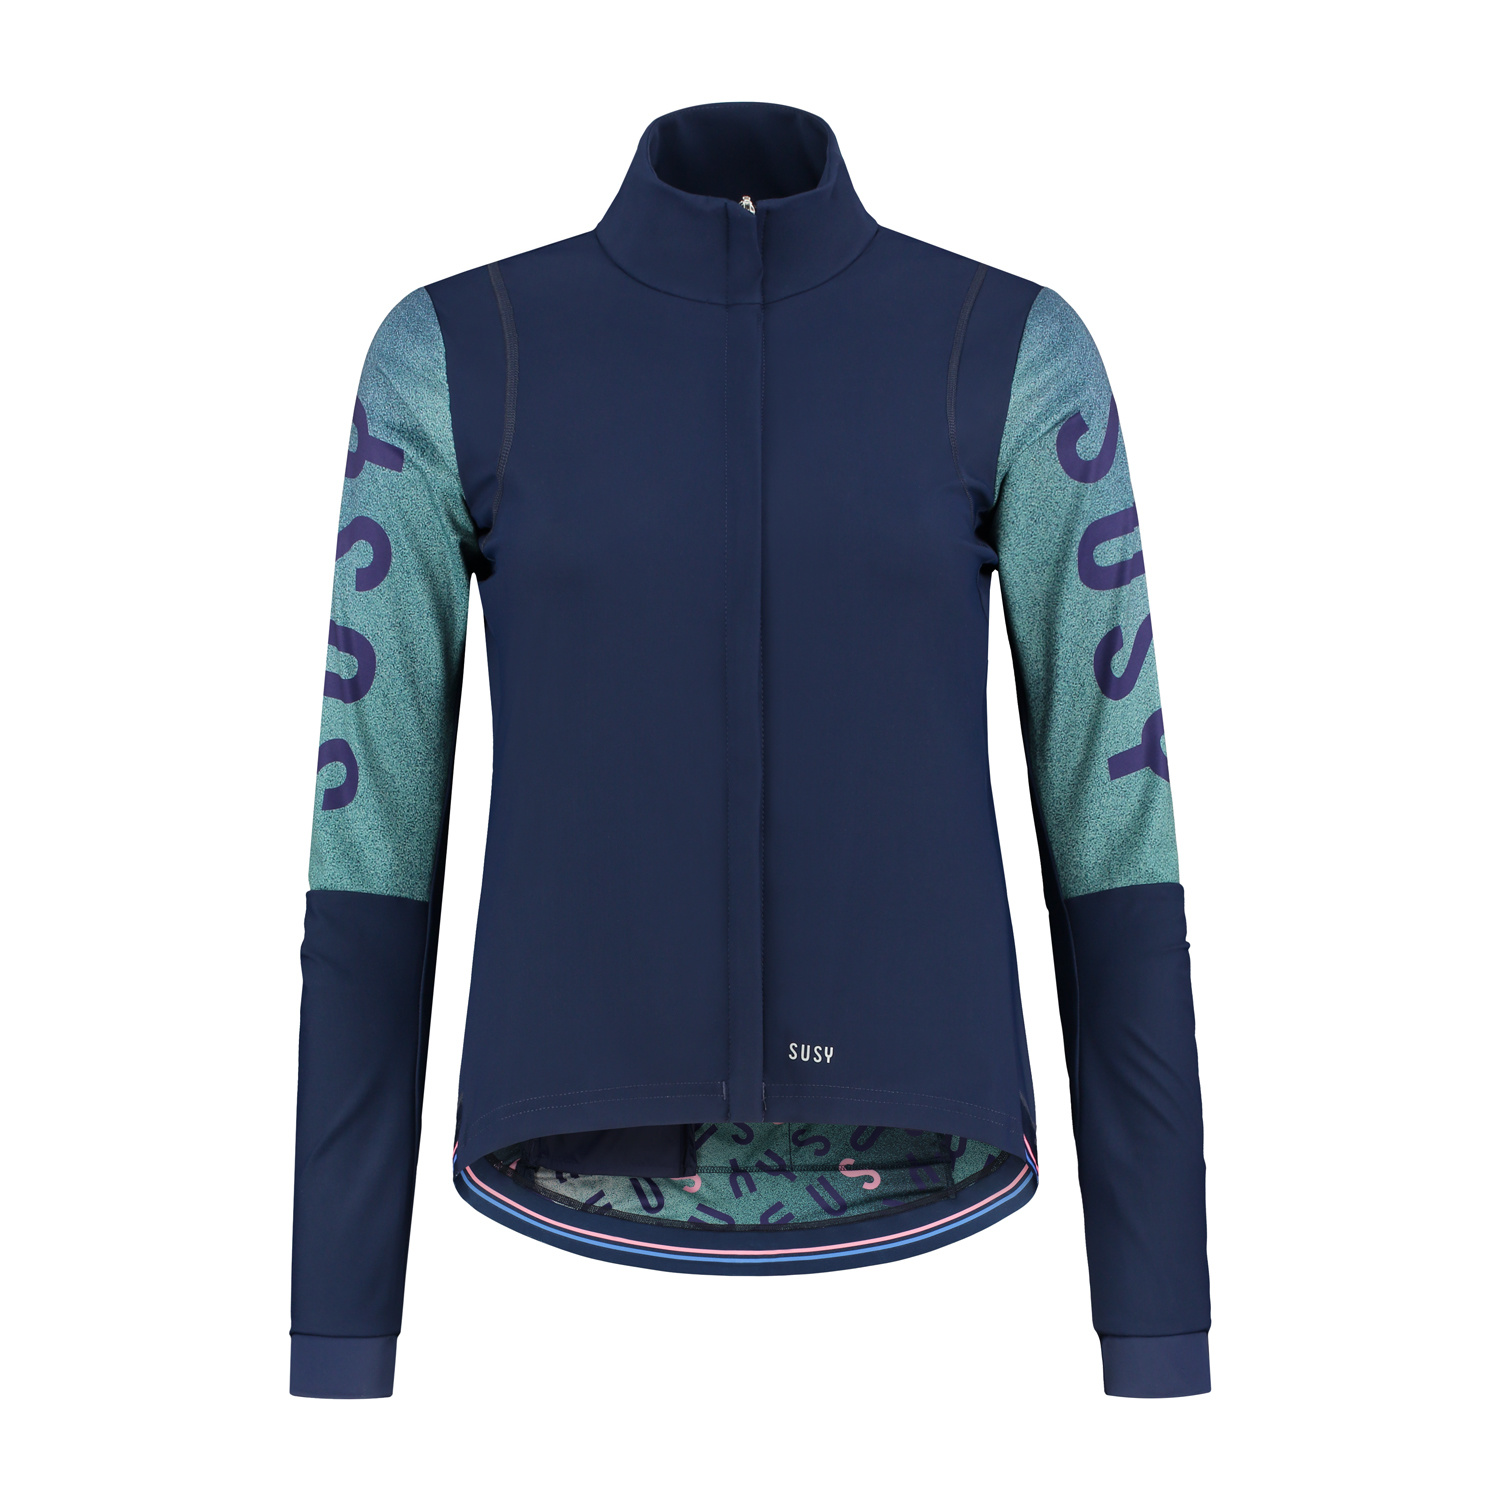 Dames fietsjasje  Wind- en waterproof